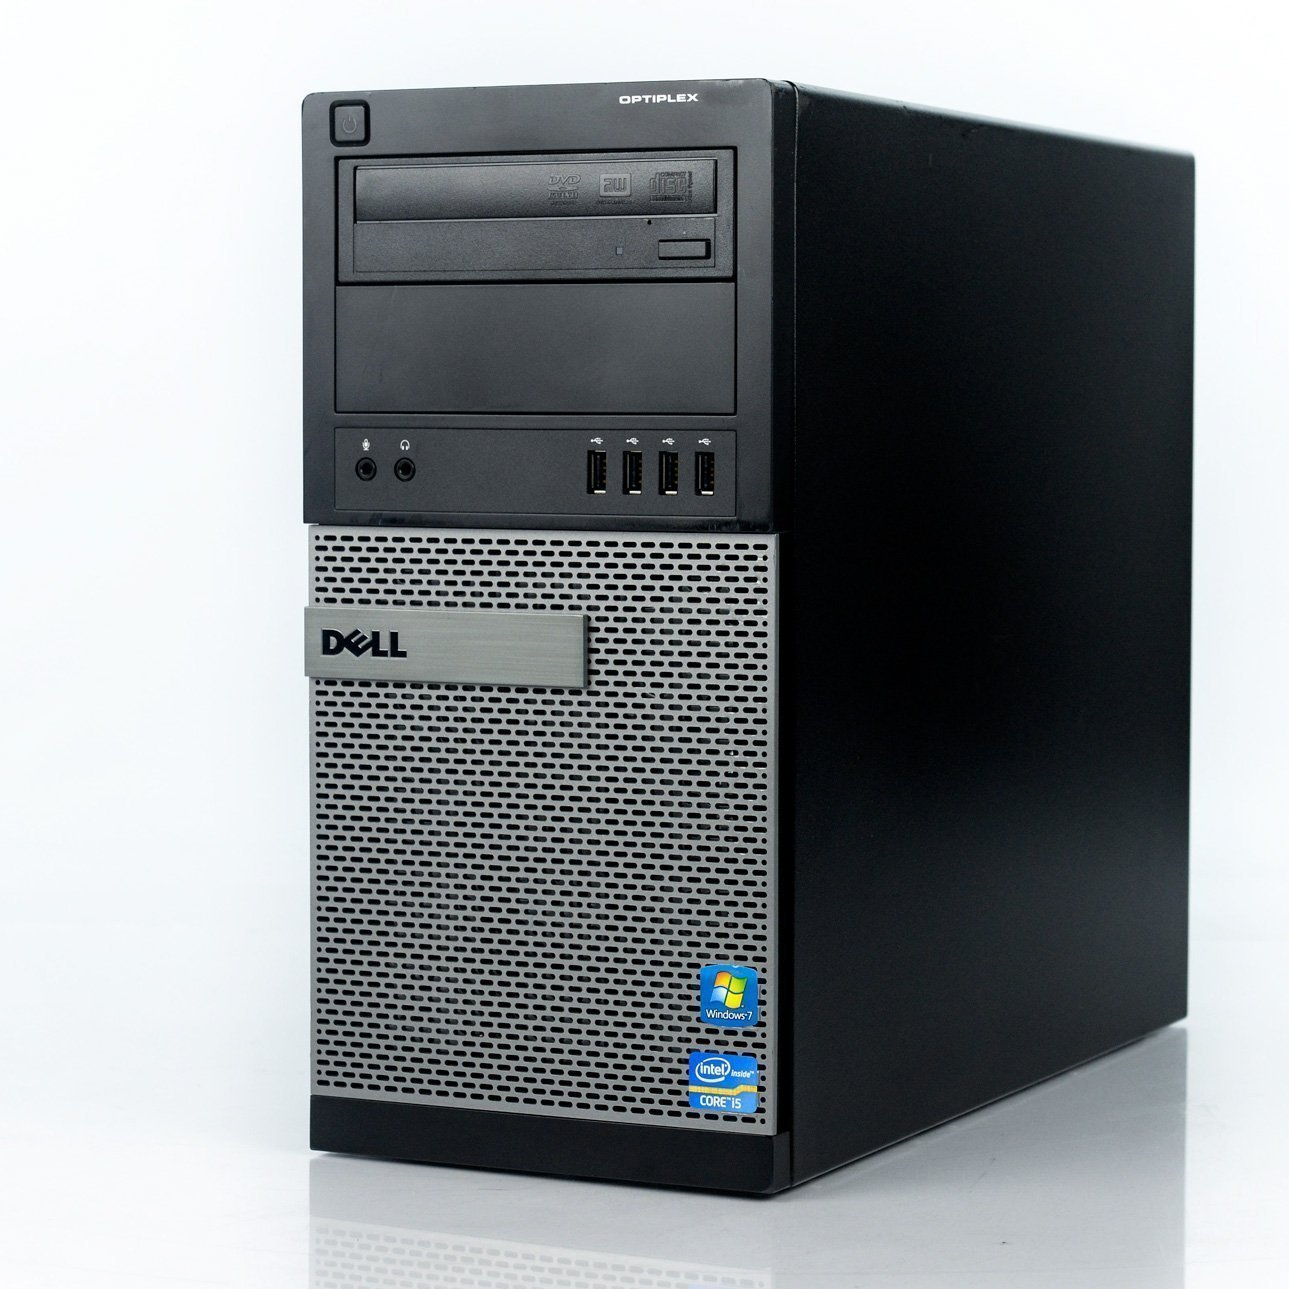 Dell Optiplex MiniTower Business High Performance Desktop Computer PC (Intel Quad-Core i7-2600 up to 3.8GHz, 16GB DDR3 Memory, 500GB HDD, DVDRW, Windows 7 Professional) (Certified Refurbished)